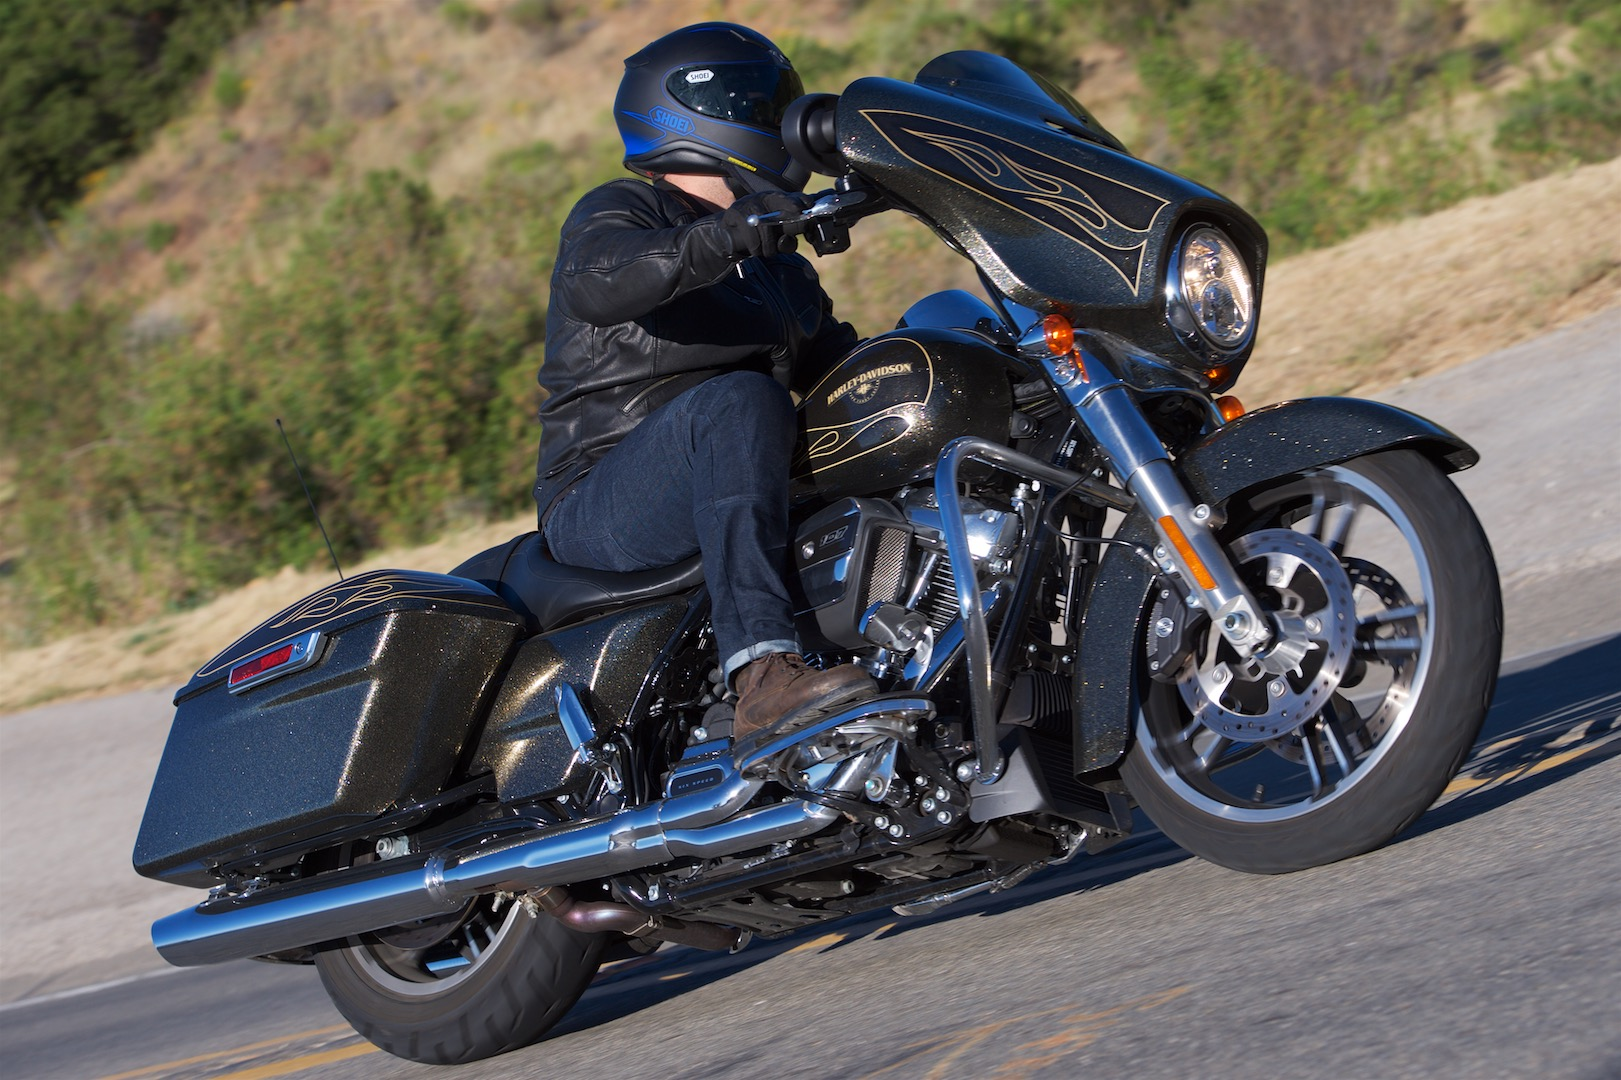 Harley Davidson Touring With 2017 Harley Davidson Street Glide Special Review 16 Fast Facts